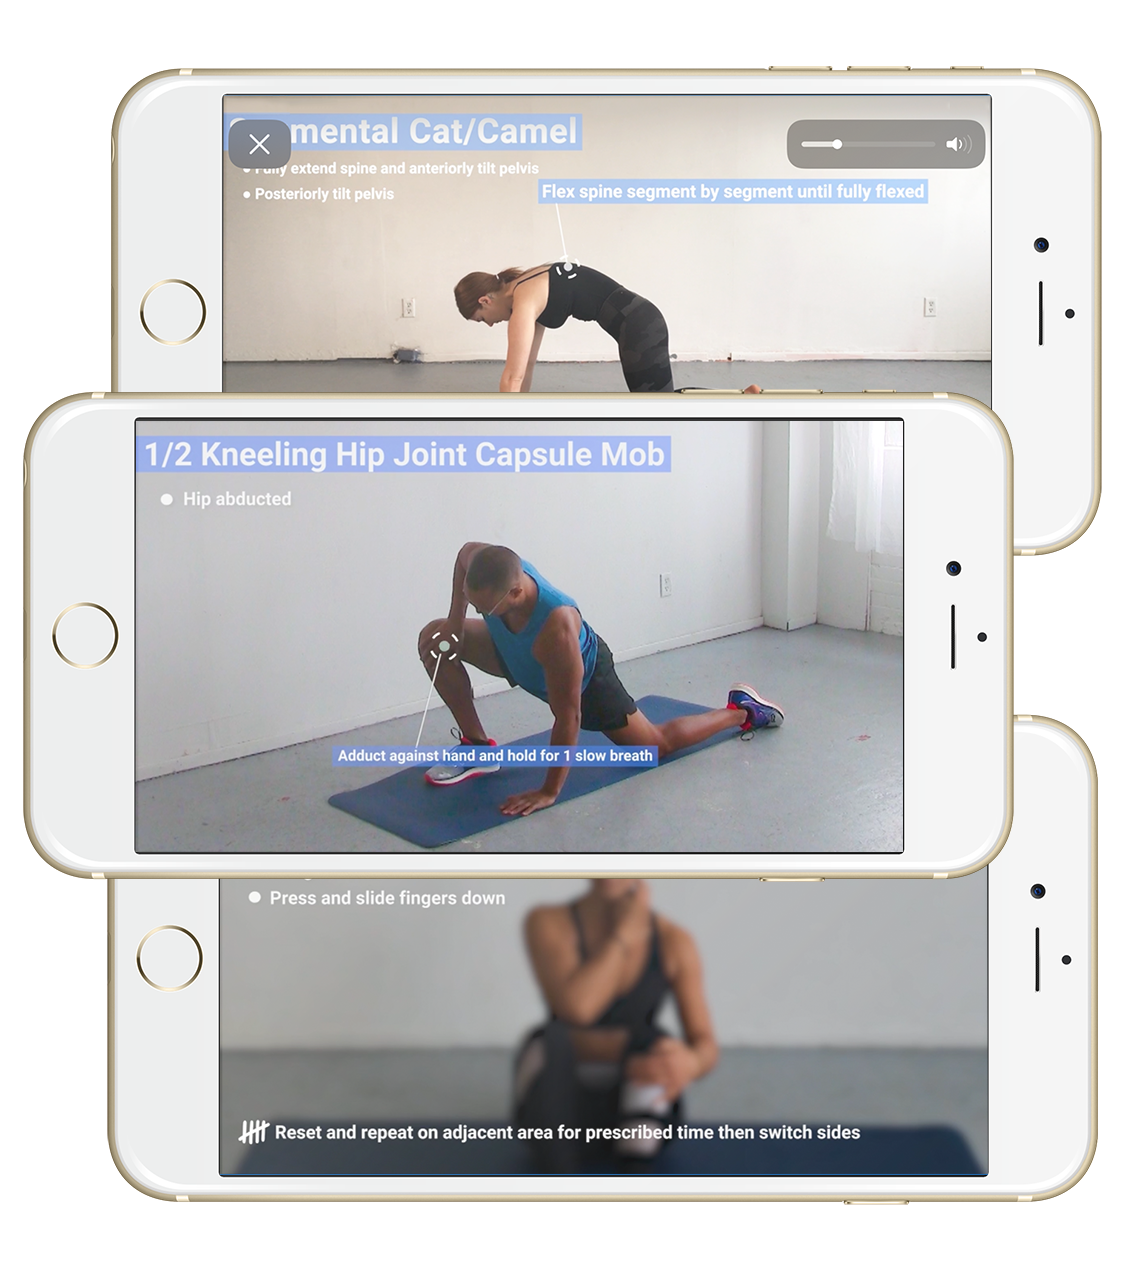 Whether you're at home, traveling or at the gym, just fire up the app and go knowing no special equipment is necessary